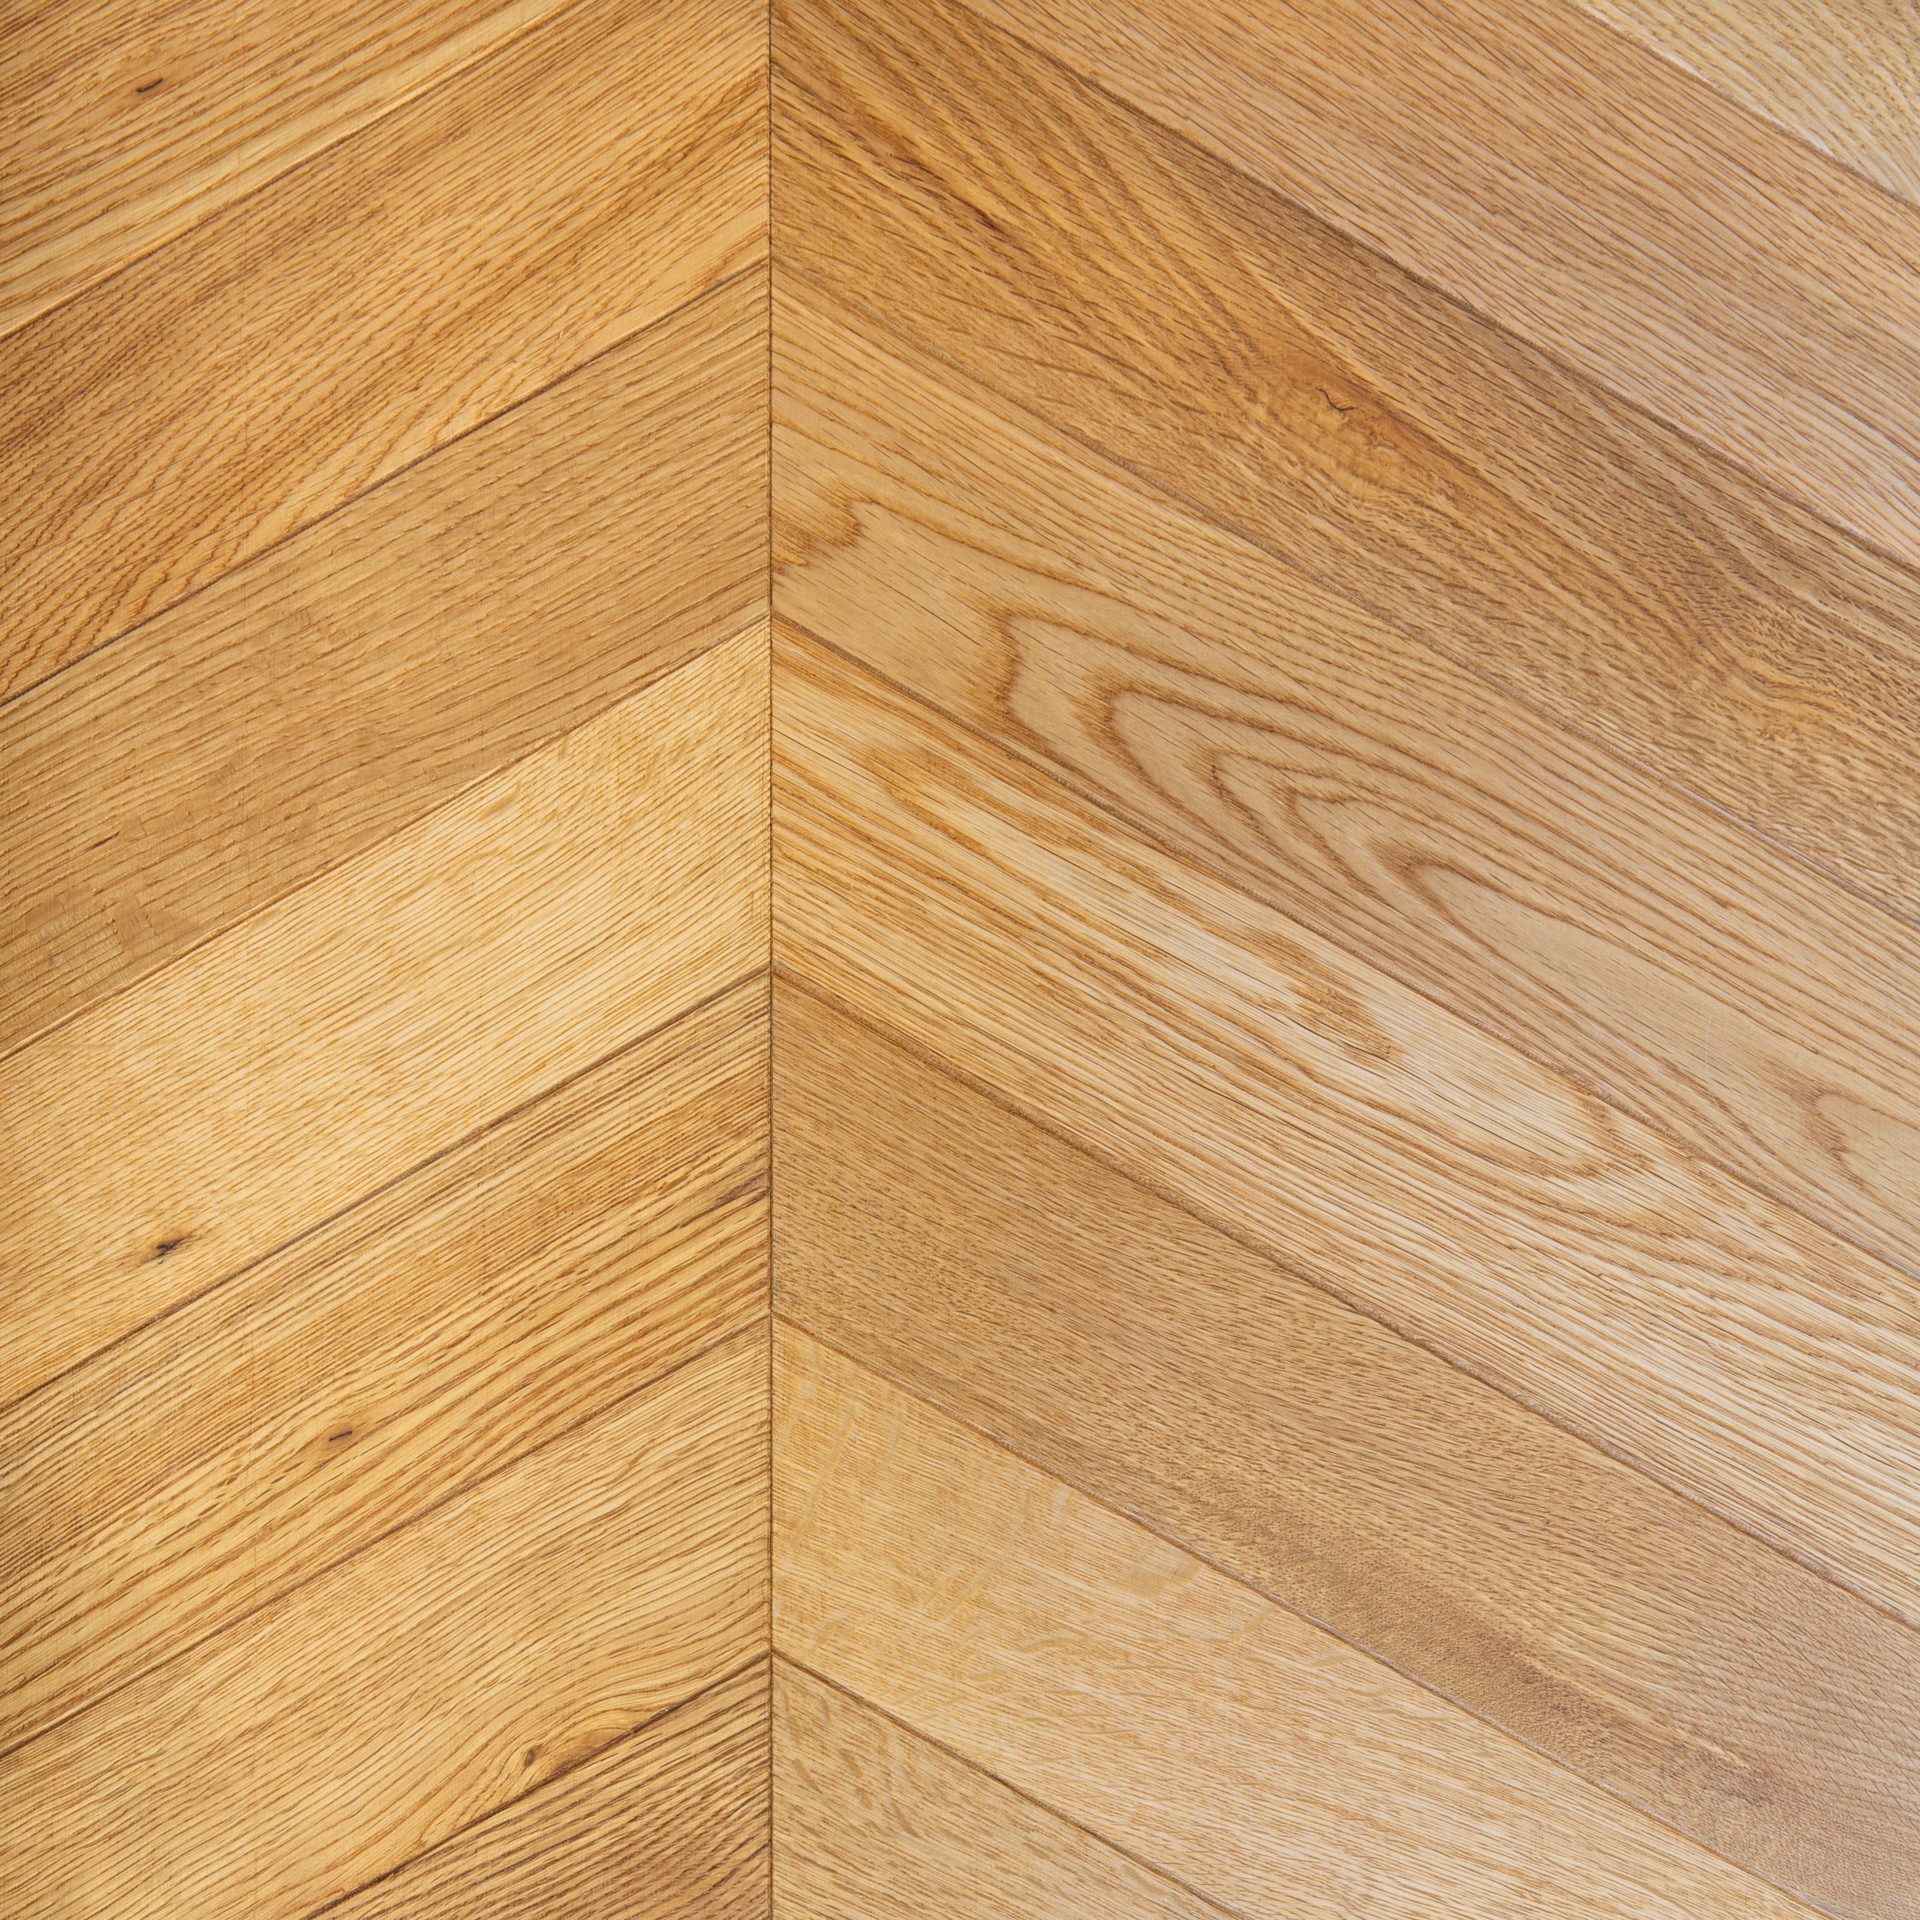 Wood Parquet Flooring - Natural Oak Chevron